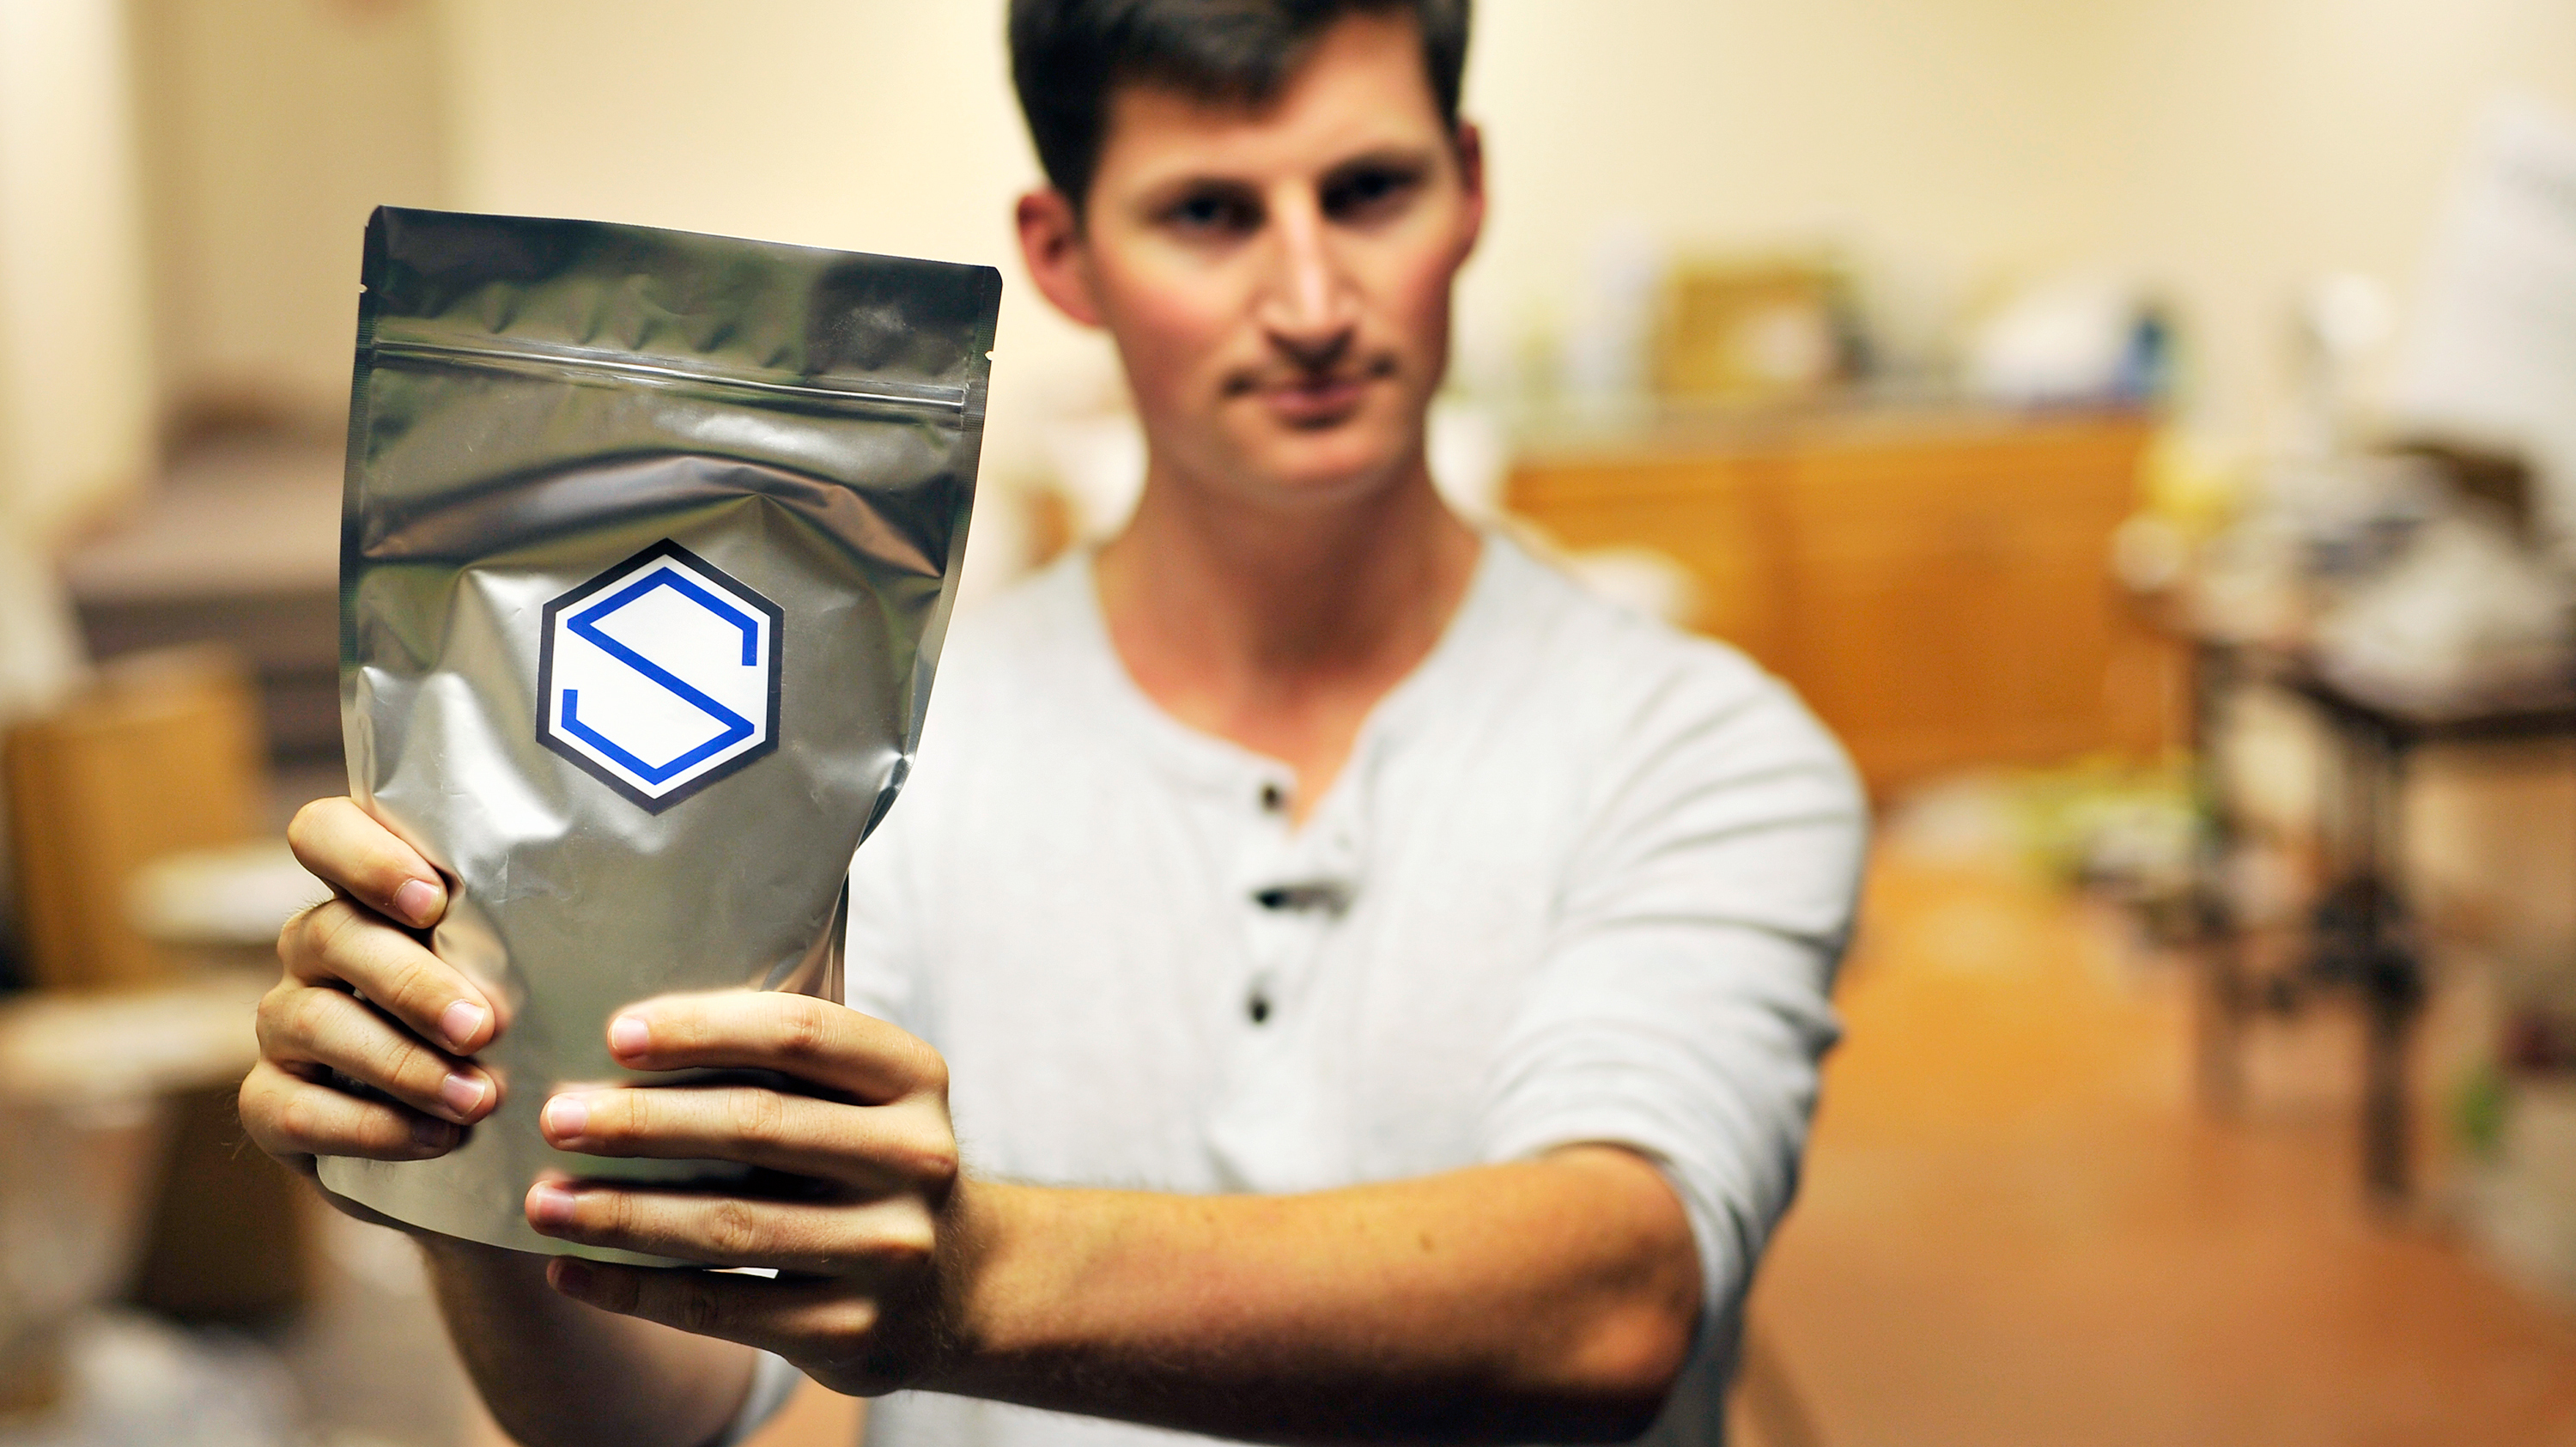 Soylent CEO Rob Rhinehart holds a bag of finished product in September 2013. Rhinehart recently discouraged members of the company's DIY online community from competing directly with Soylent. Photo: Josh Edelson/AFP/Getty Images